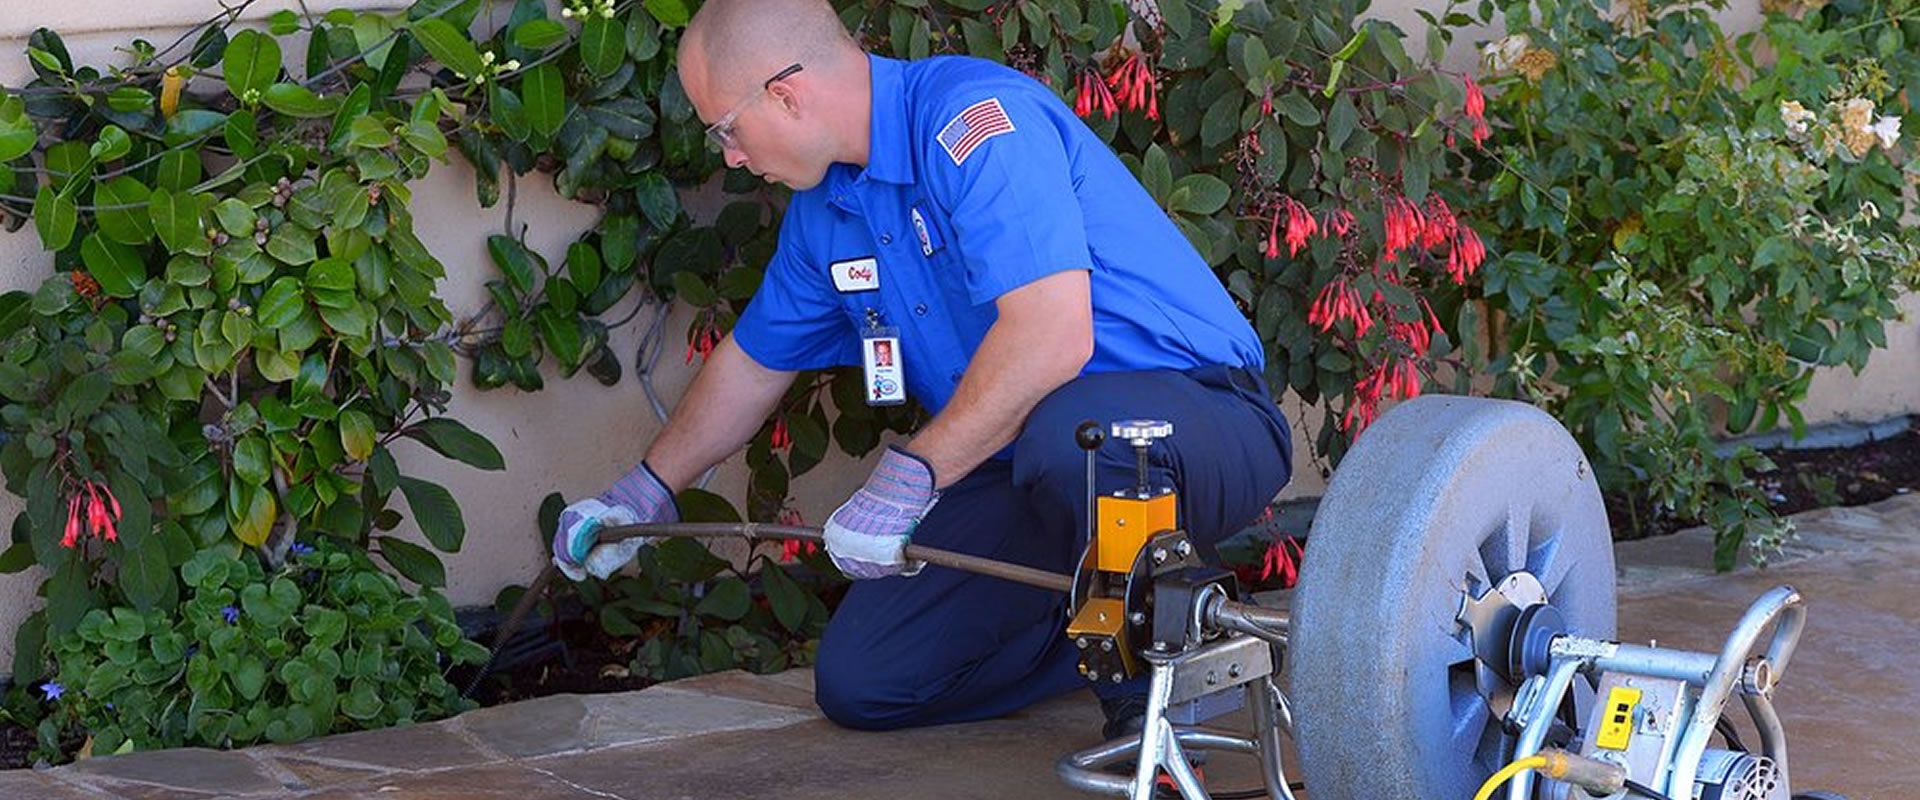 Trenchless Sewer Repair in Santa Ynez, CA